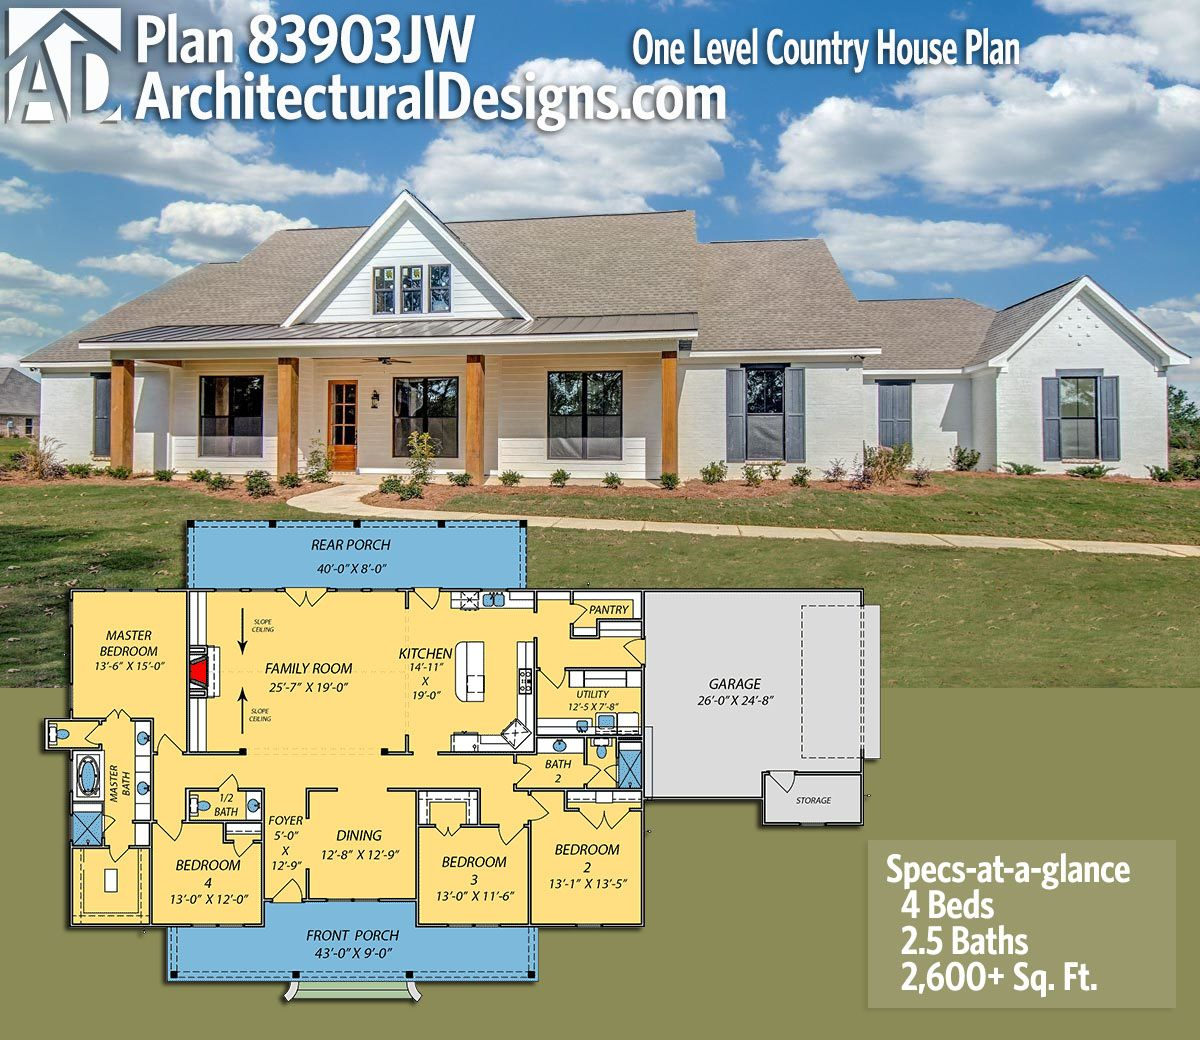 Architectural Designs House Plan 83903JW gives you one